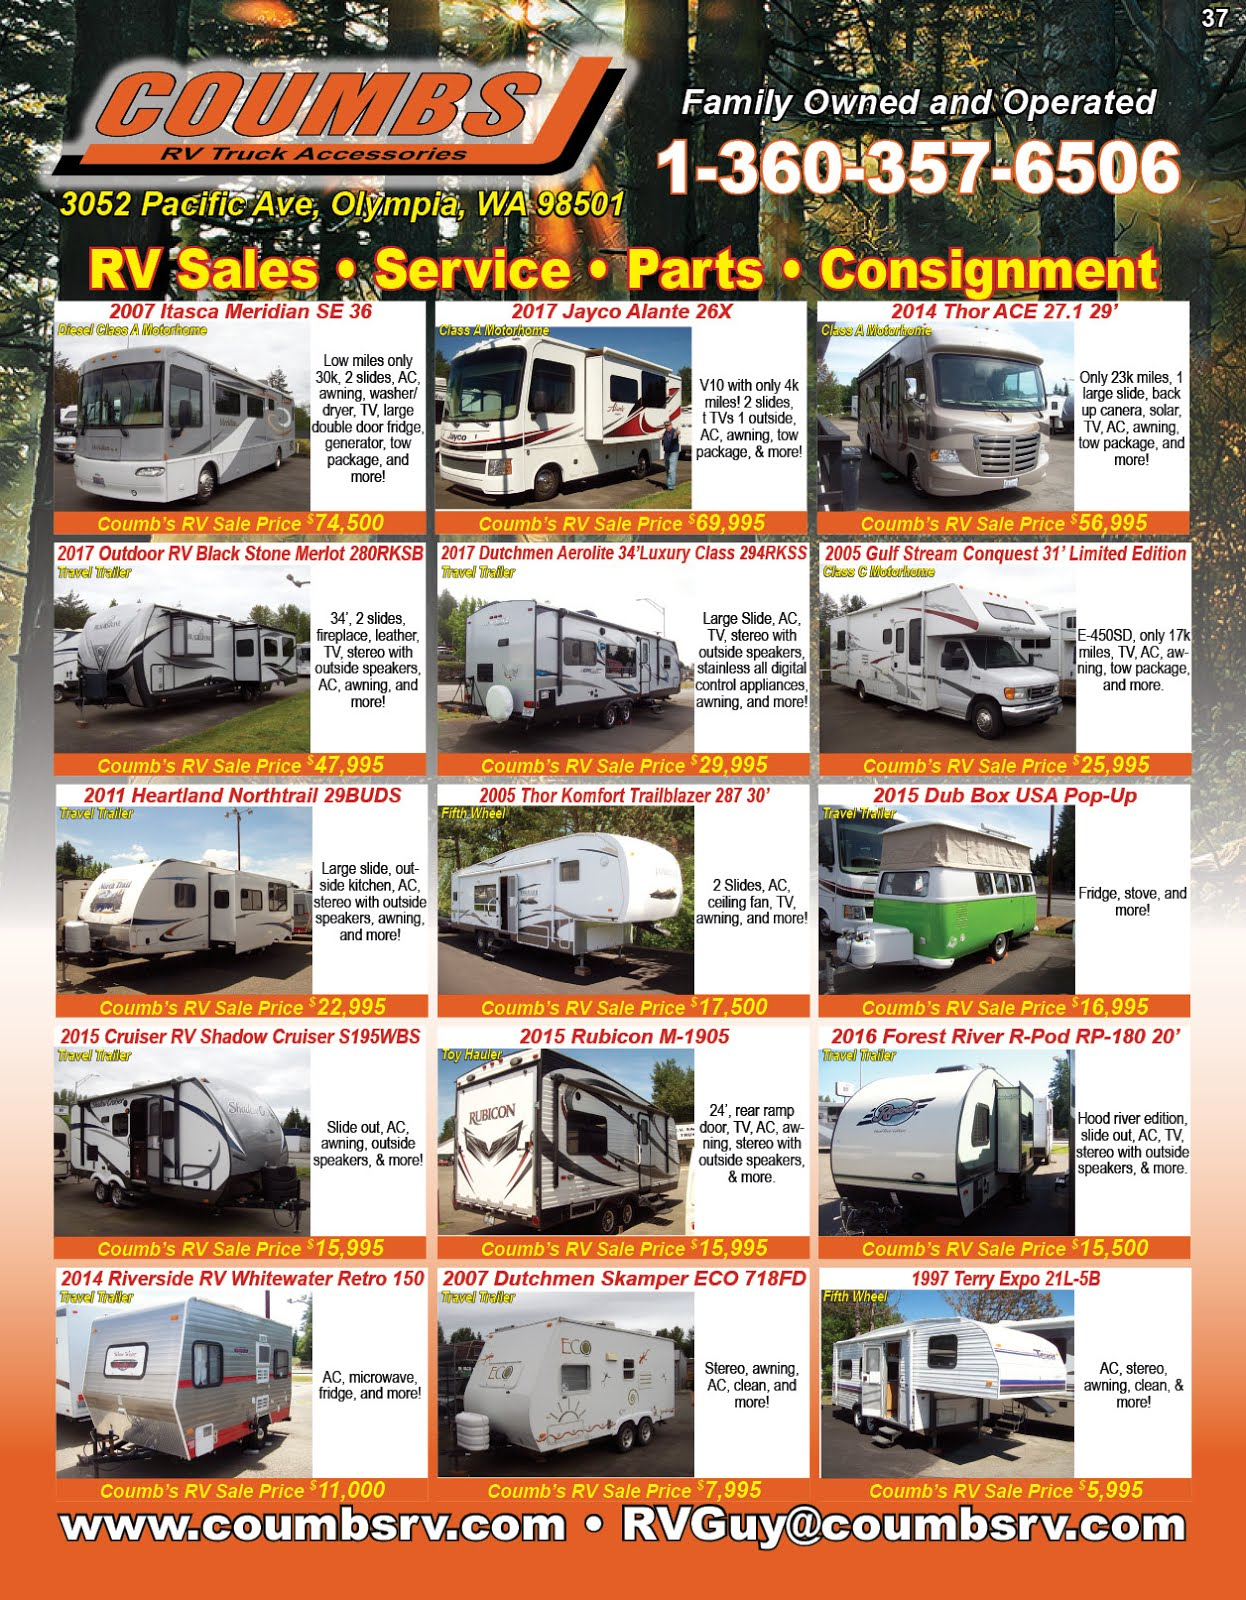 Coumbs RV Sales Service Parts & Consignments